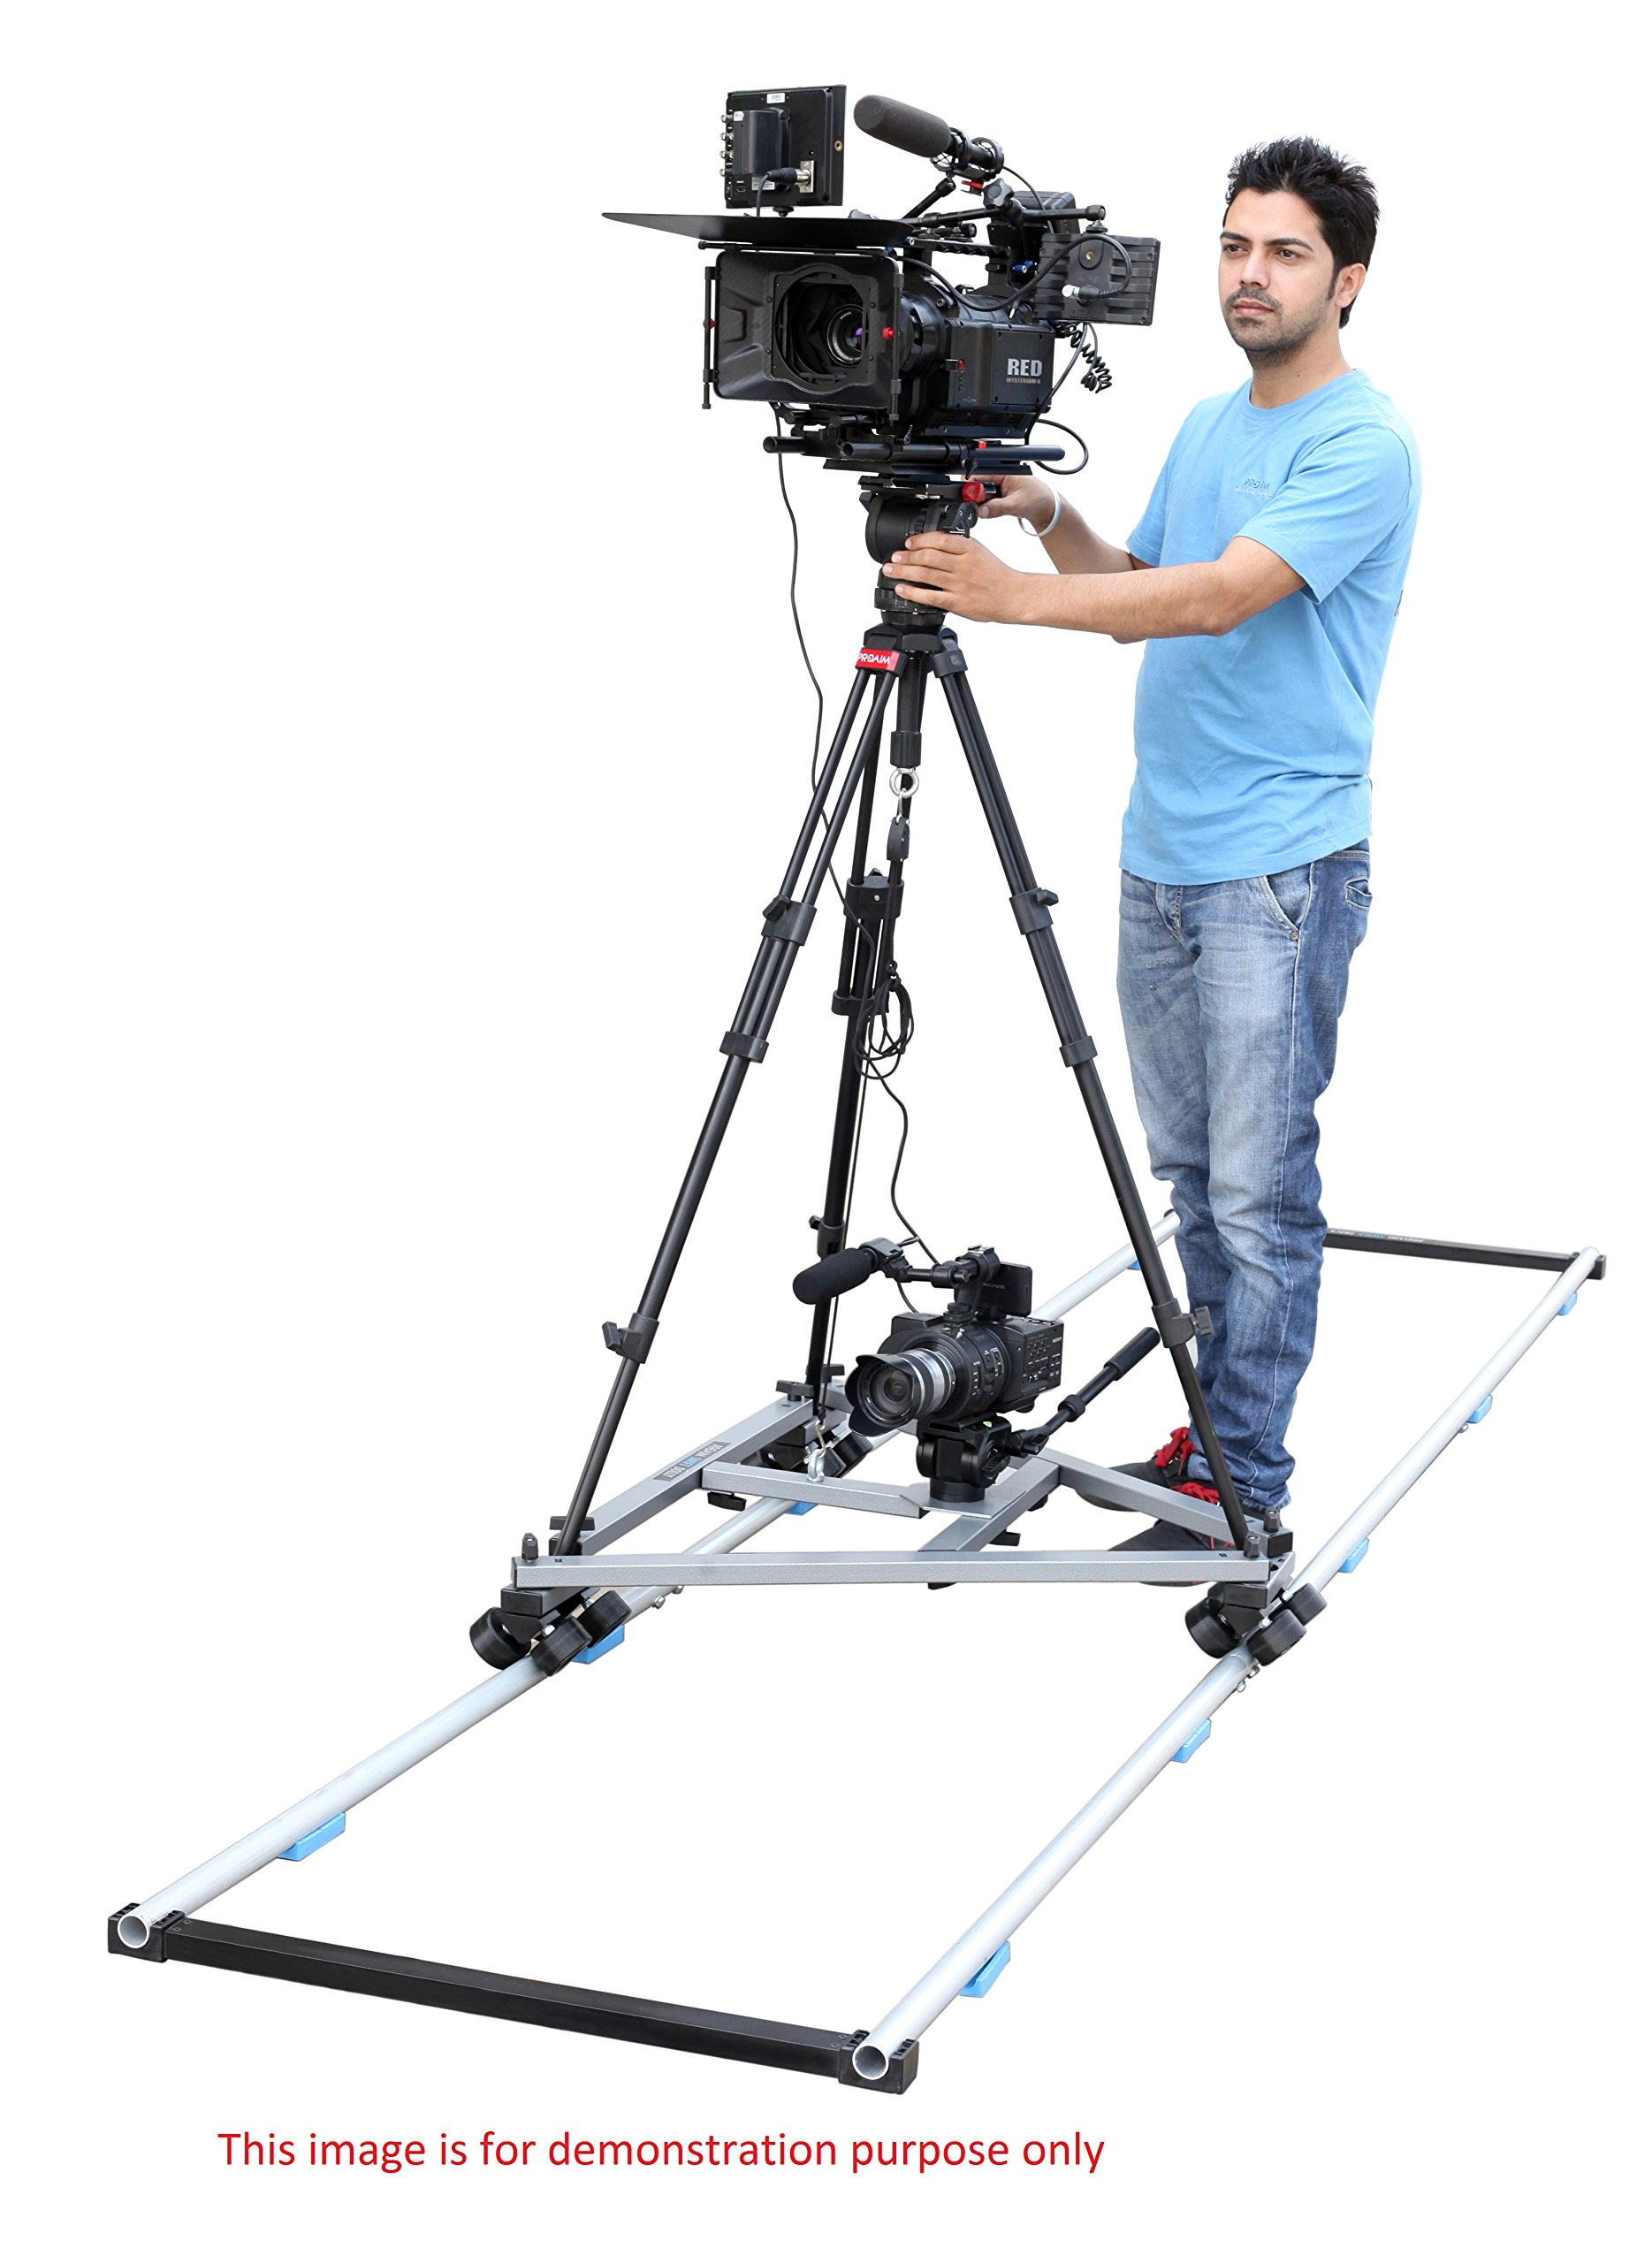 Proaim Swift Professional Heavy Duty Camera Tripod Dolly with Wheels for DSLR Video Photography Film (SWFT-DL) | Compatible with Track & Jib by PROAIM